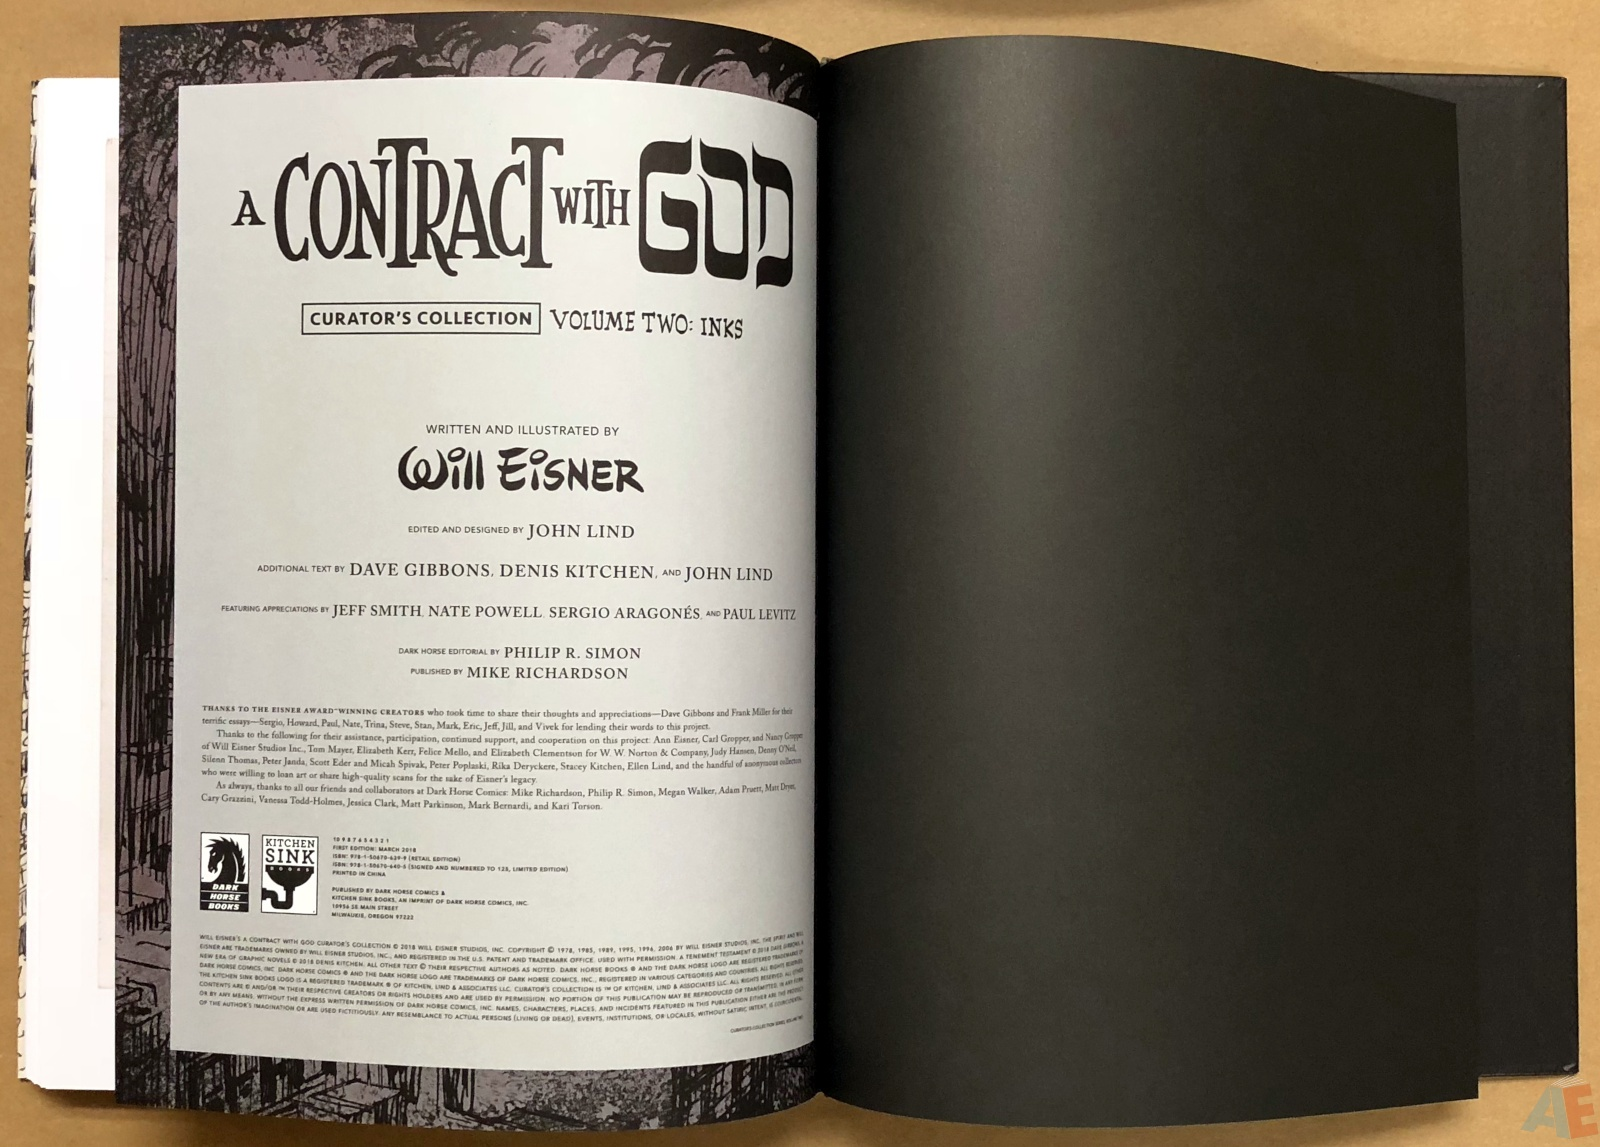 Will Eisner's A Contract with God Curator's Collection 54